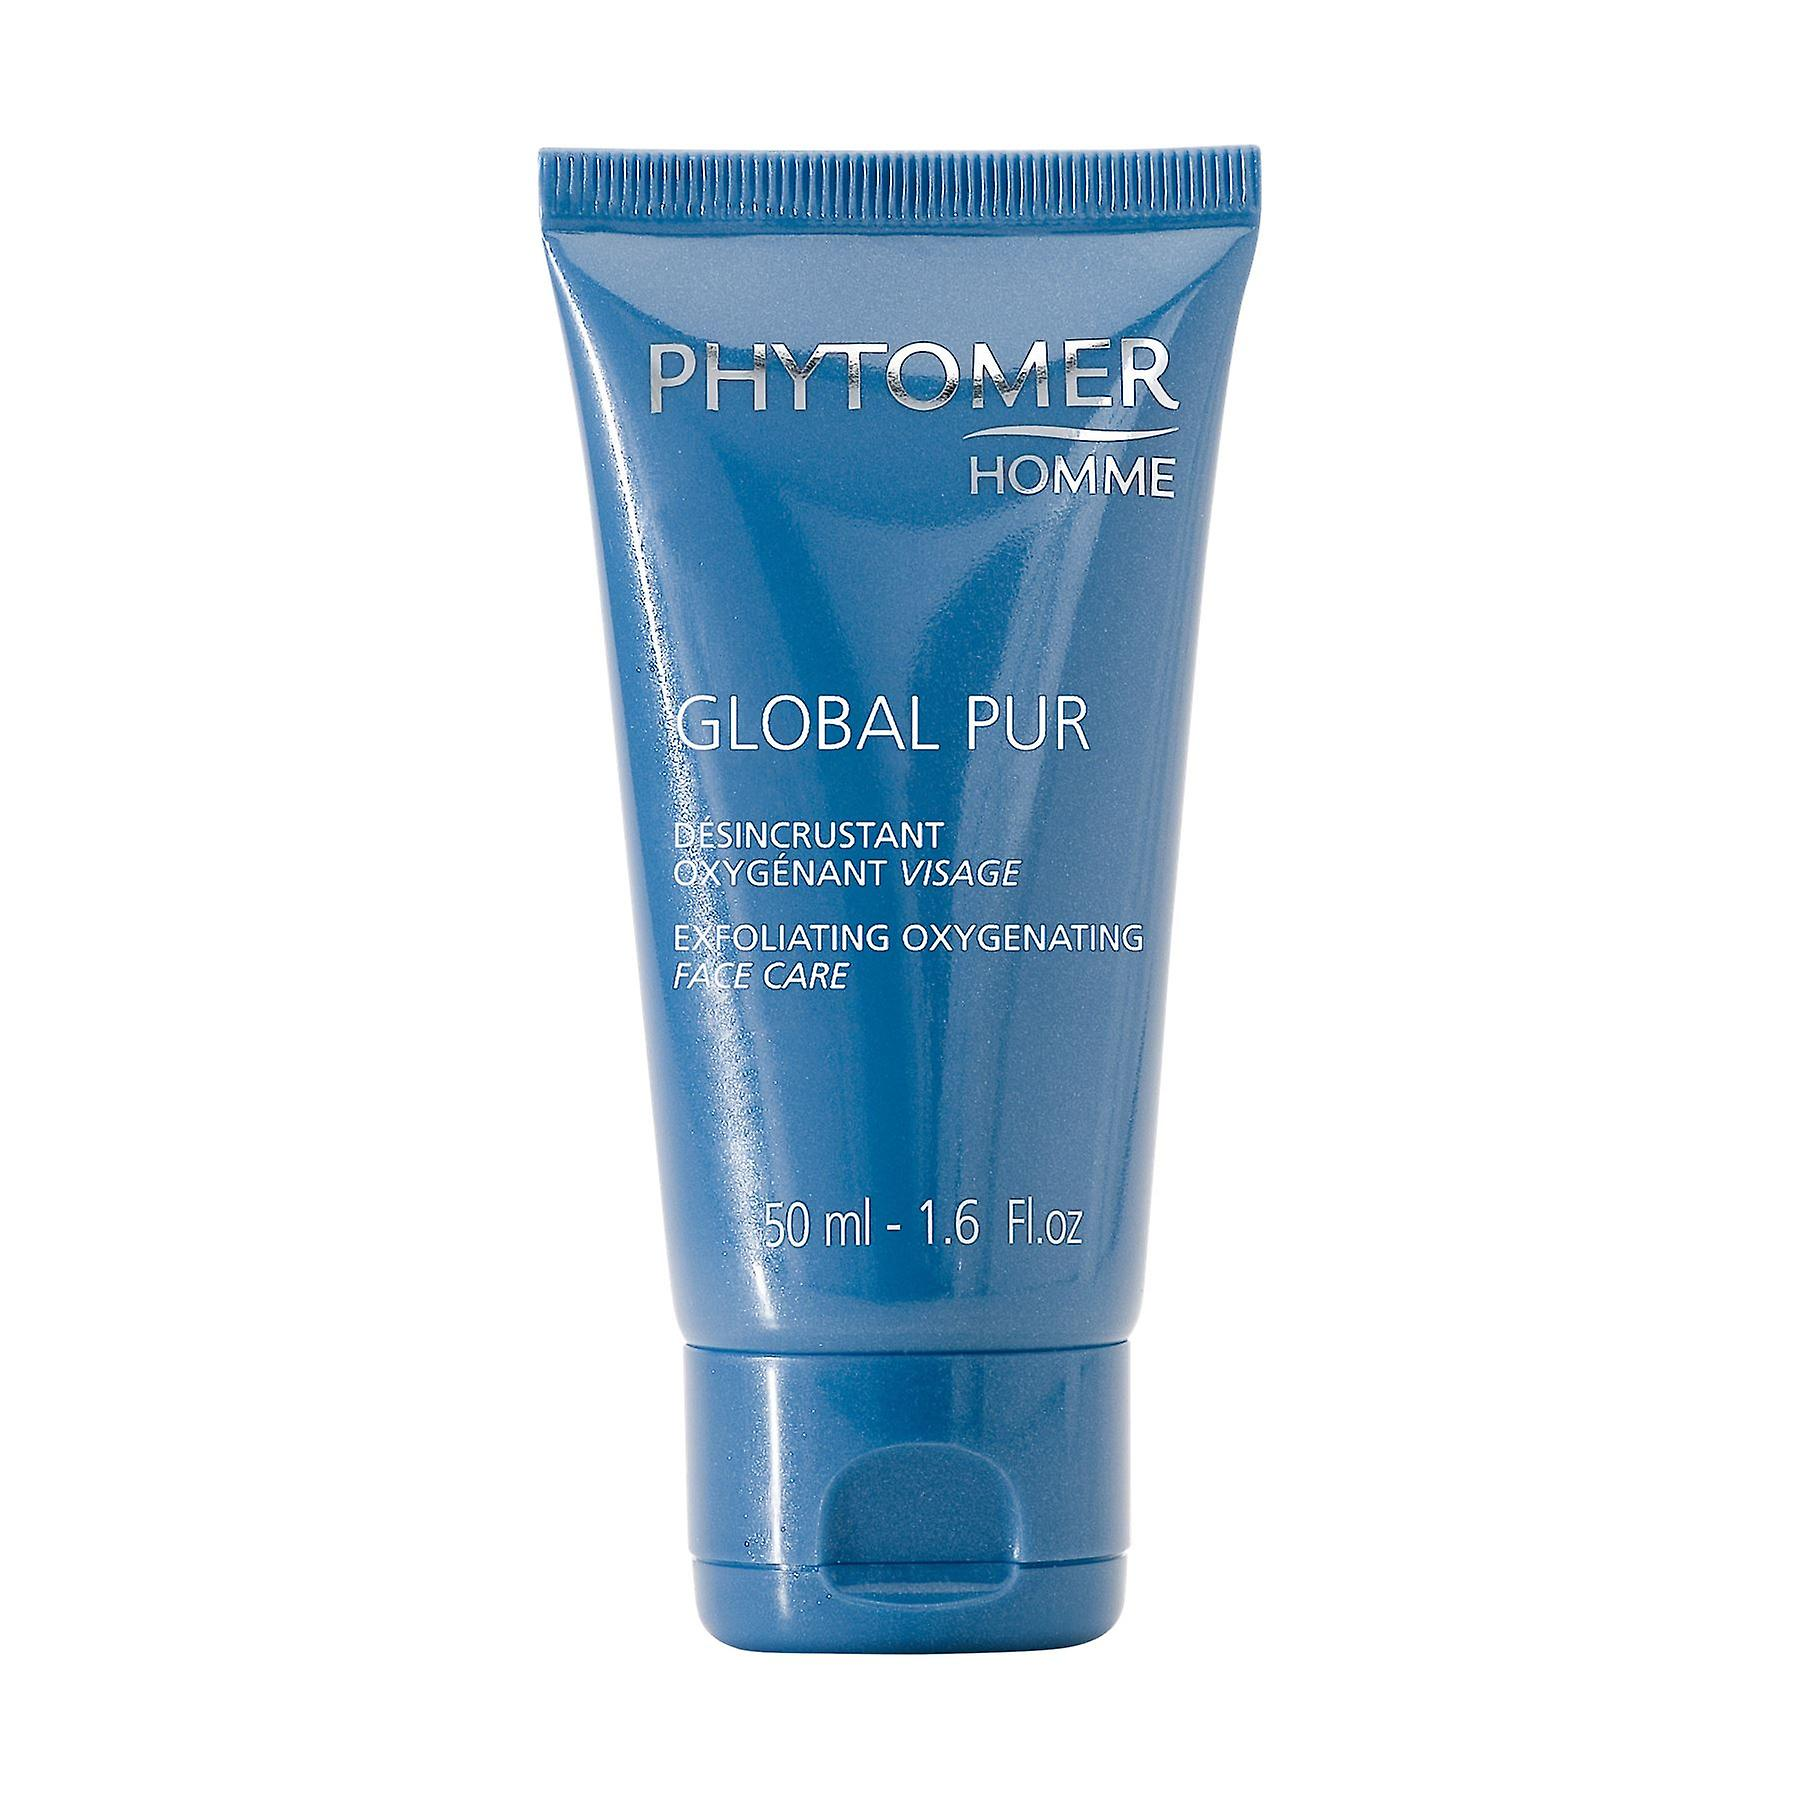 Phytomer Homme Global Pur Exfoliating Oxygenating Face Care 50ml